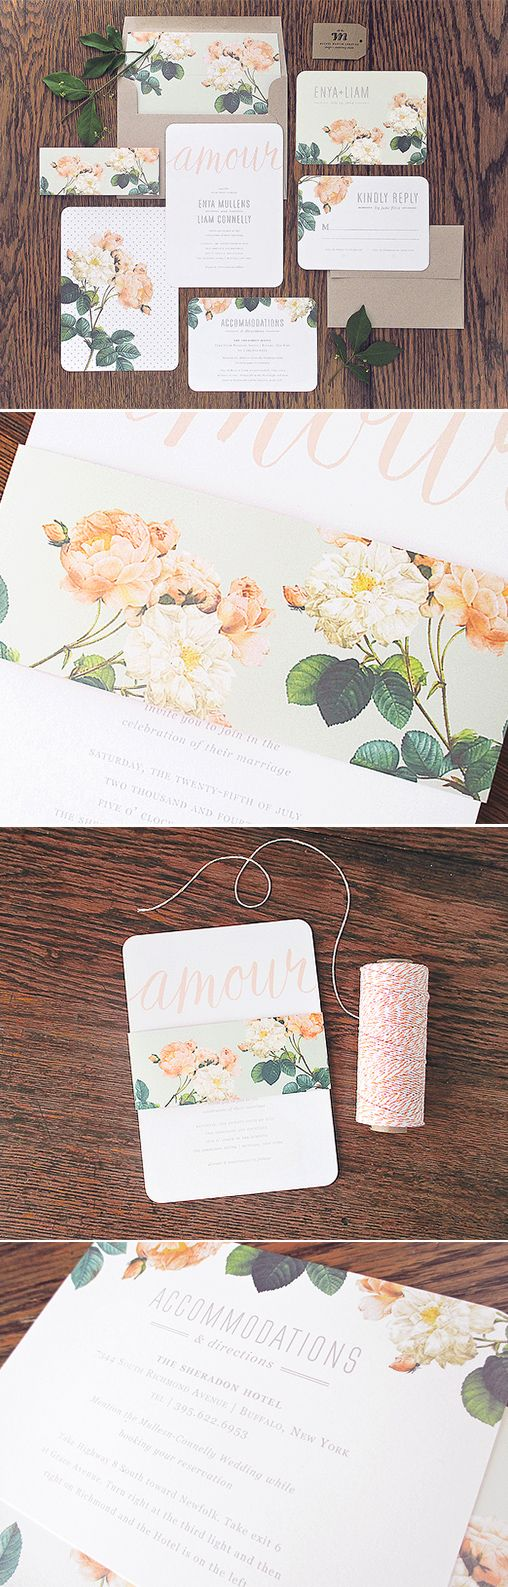 floral stationery | pastel wedding ideas | kraft paper envelopes | wedding invitations | Rachel Marvin Creative | #weddingchicks